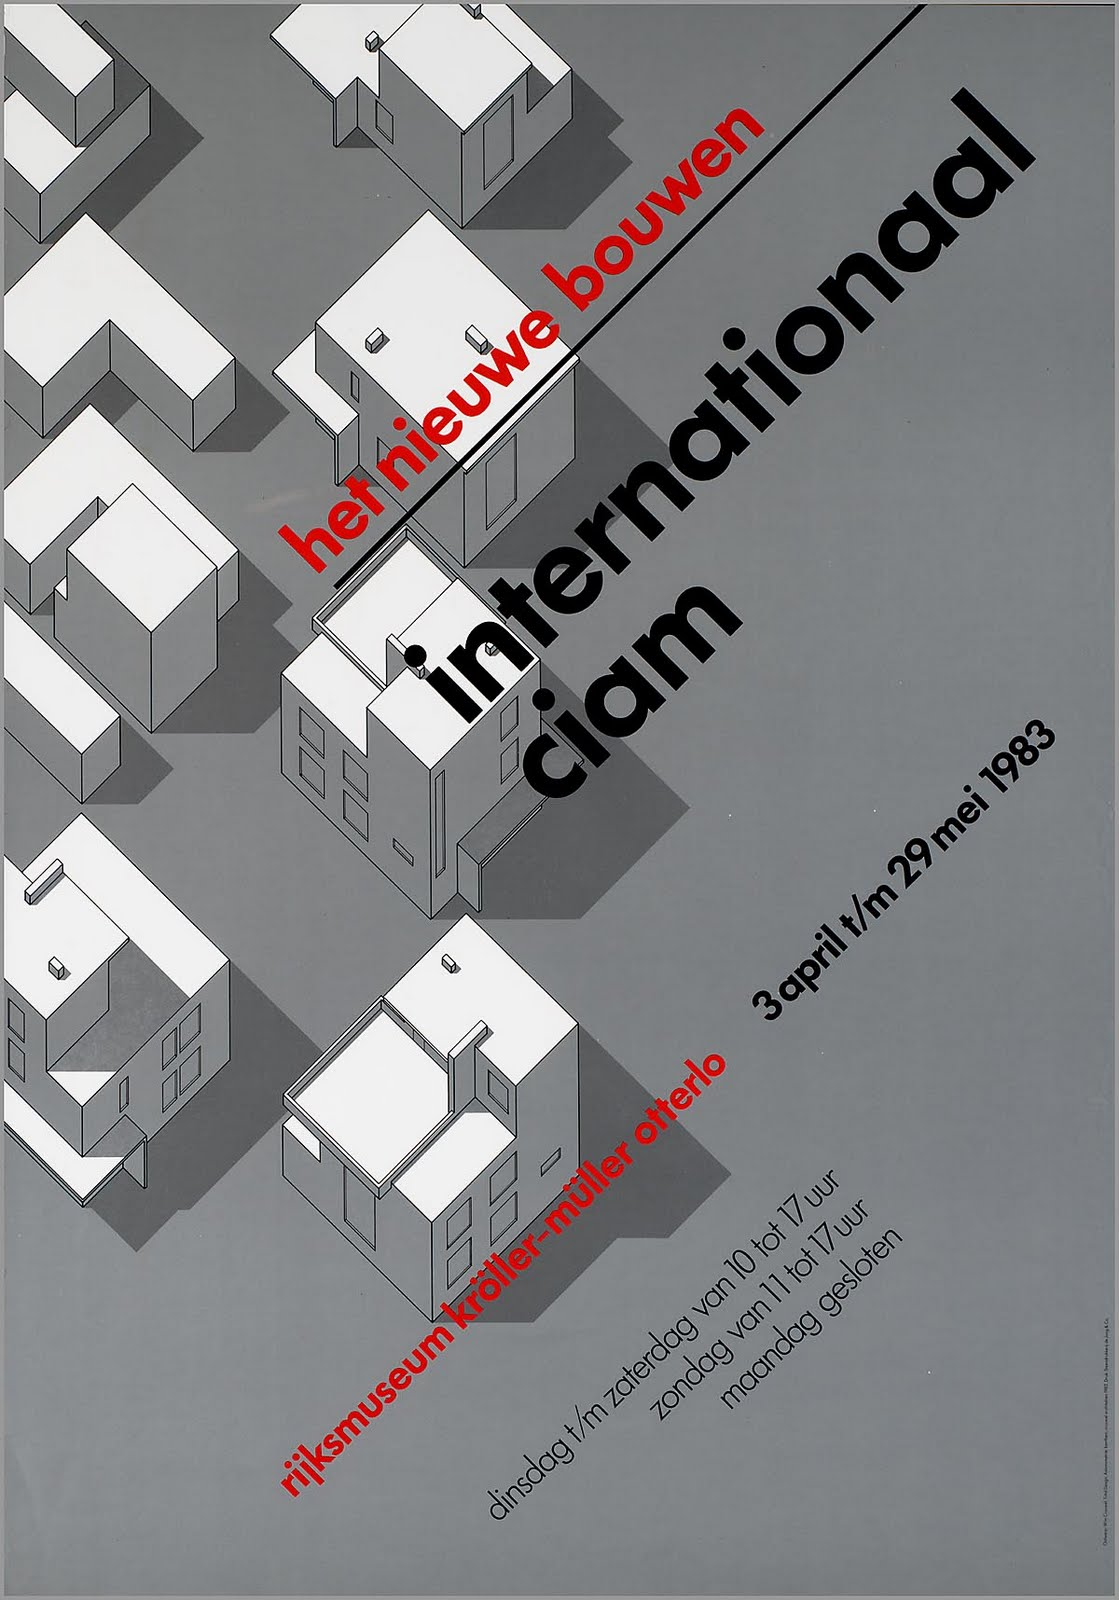 Poster design architecture - Art Of Posters Wim Crouwel Selected Graphic Designs And Prints From Museum Archive